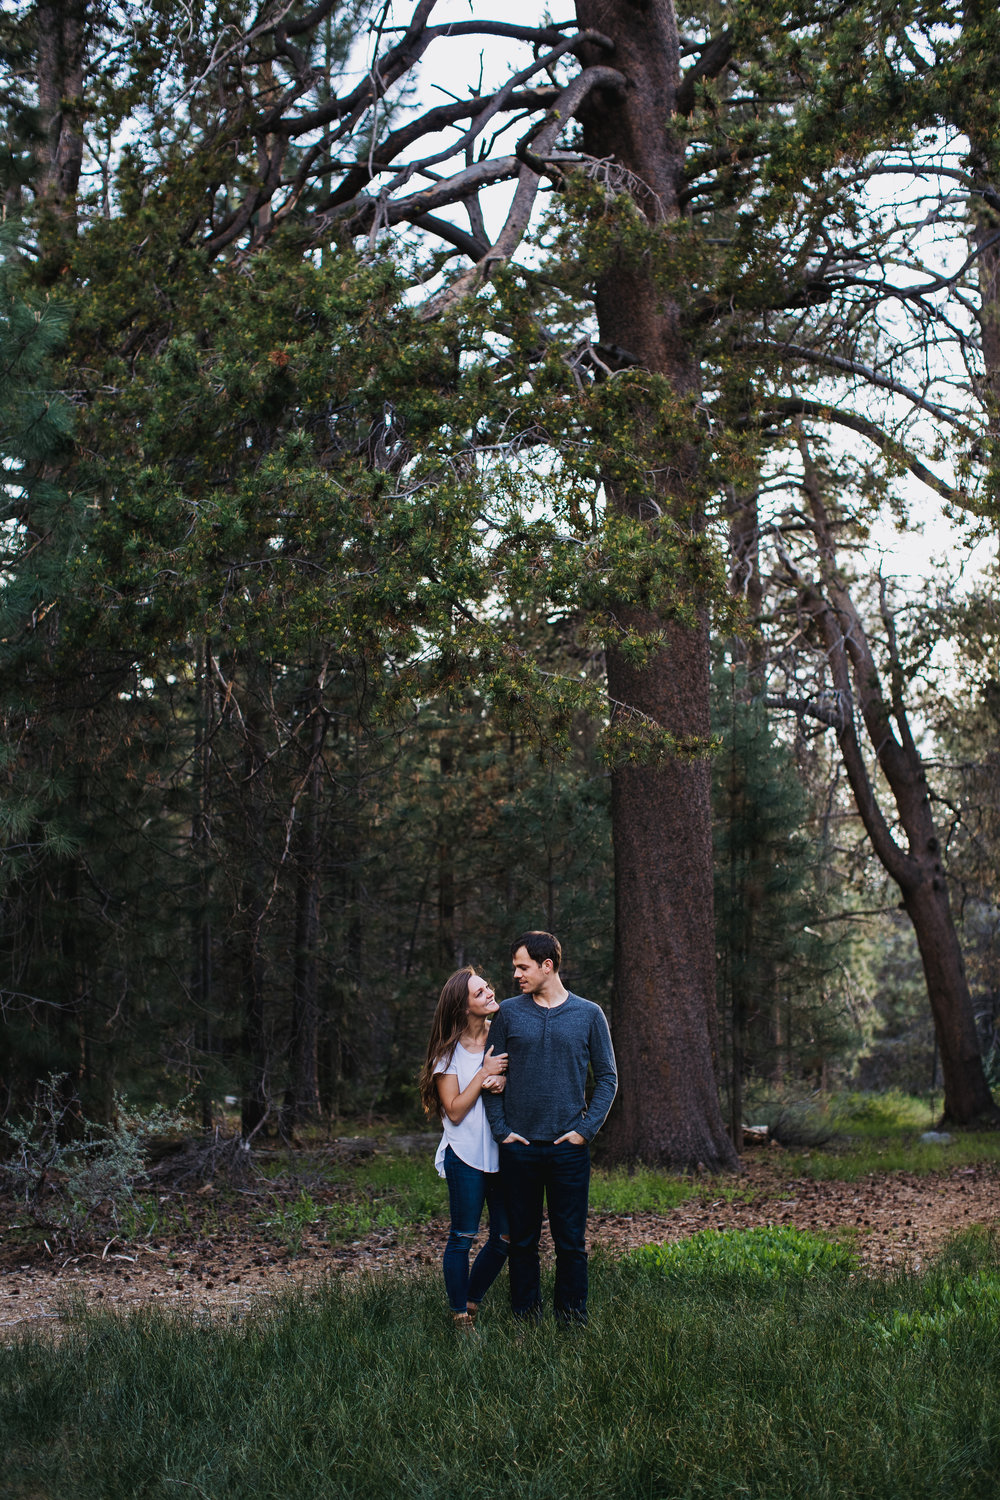 Chelsea-Michael-Engagement-8.jpg